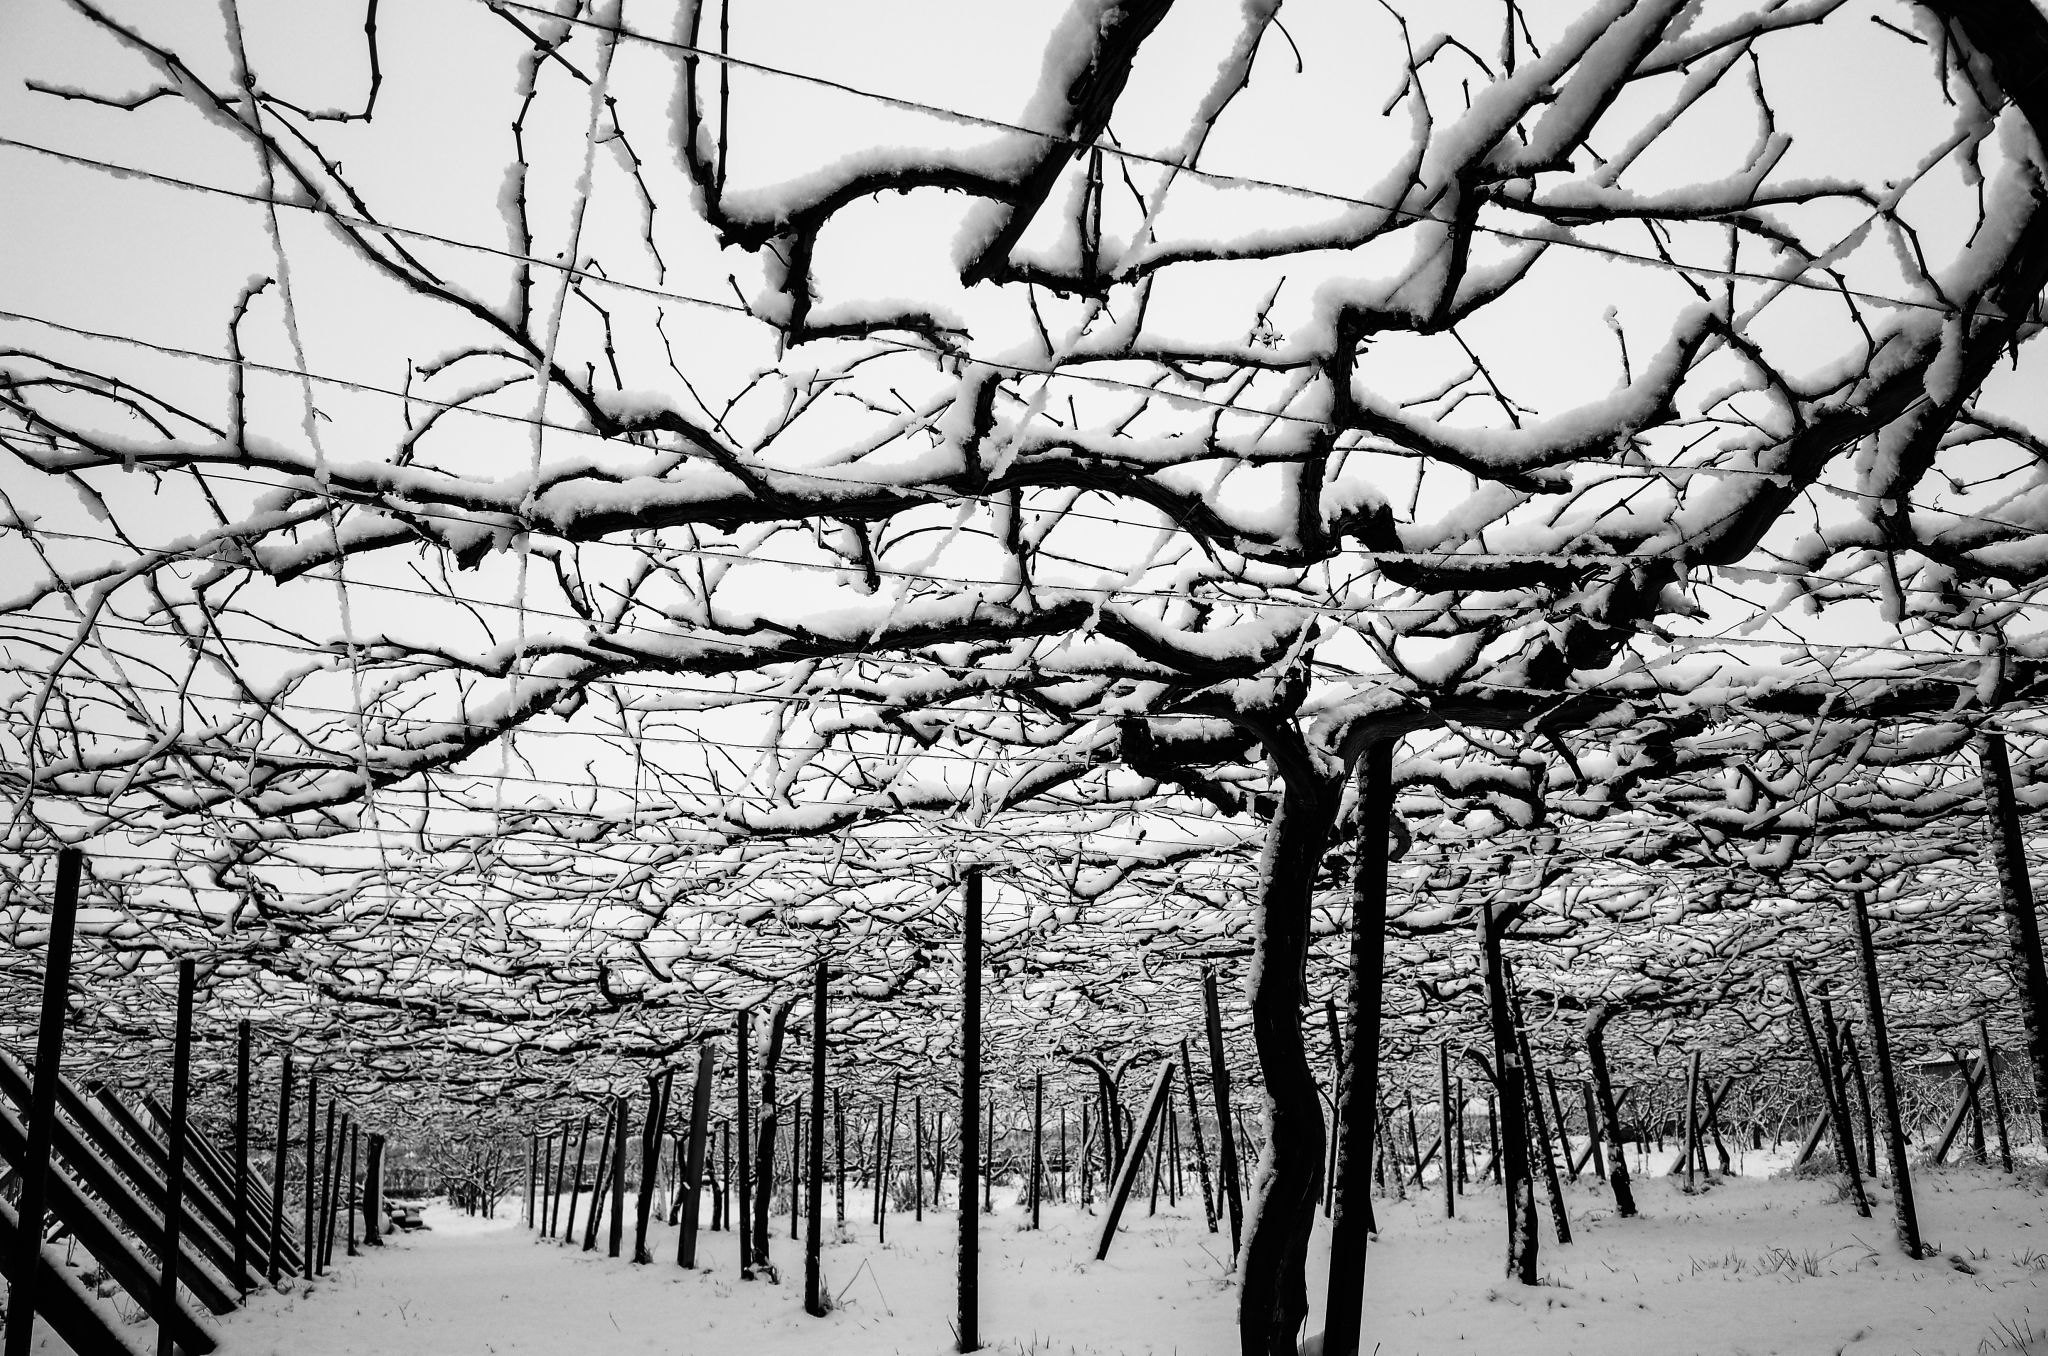 Vineyard covered with snow, Yamanashi, Japan 雪の葡萄園、甲府盆地